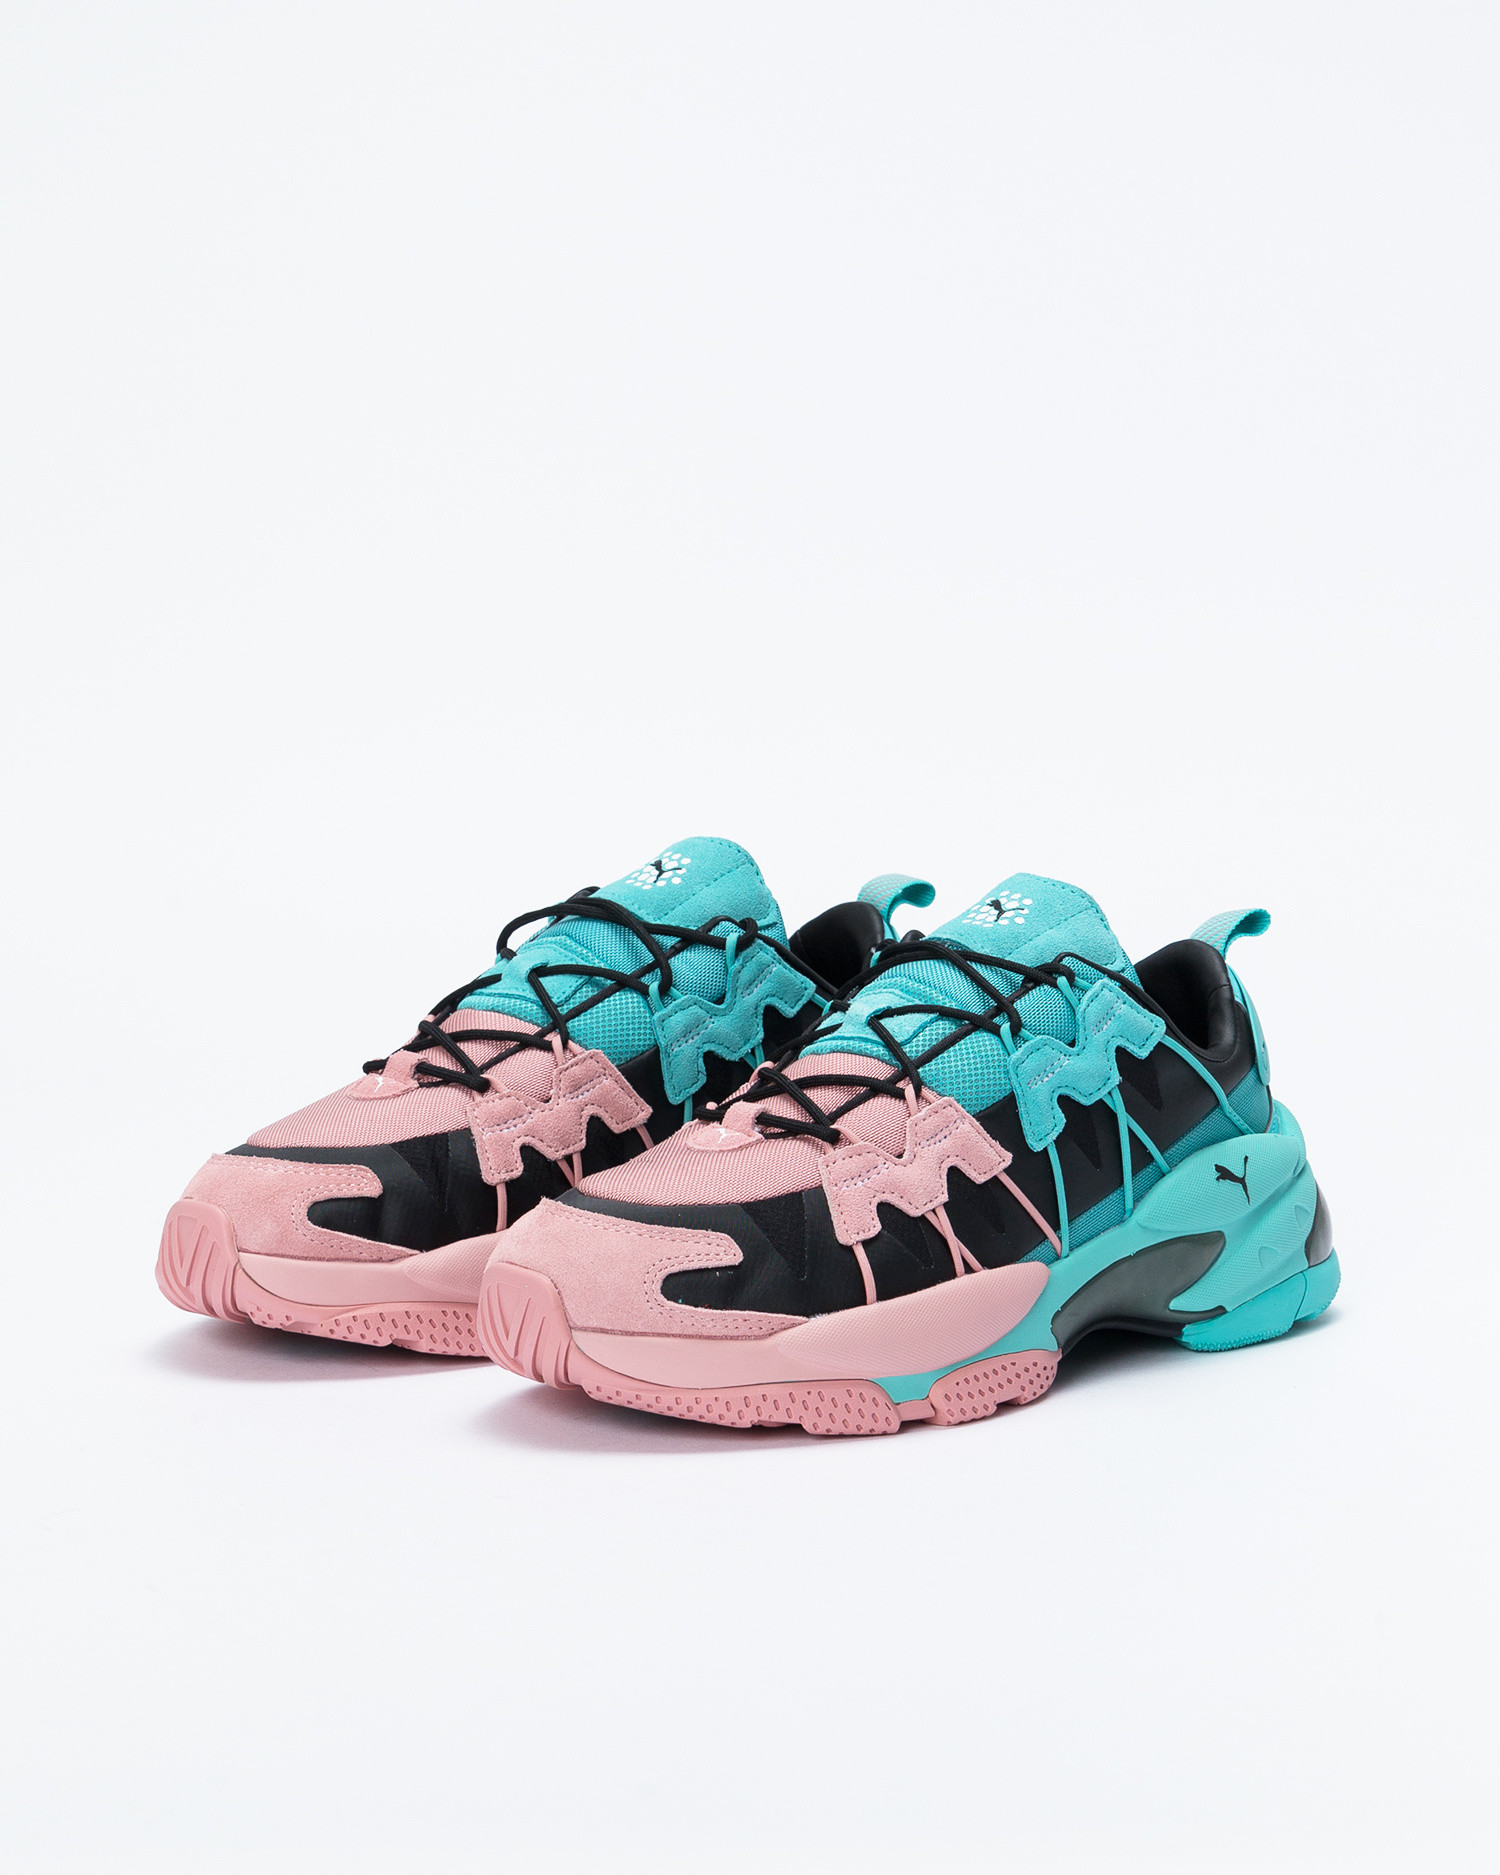 Puma LQD Cell Omega Manga Cult Bridal Rose Blue